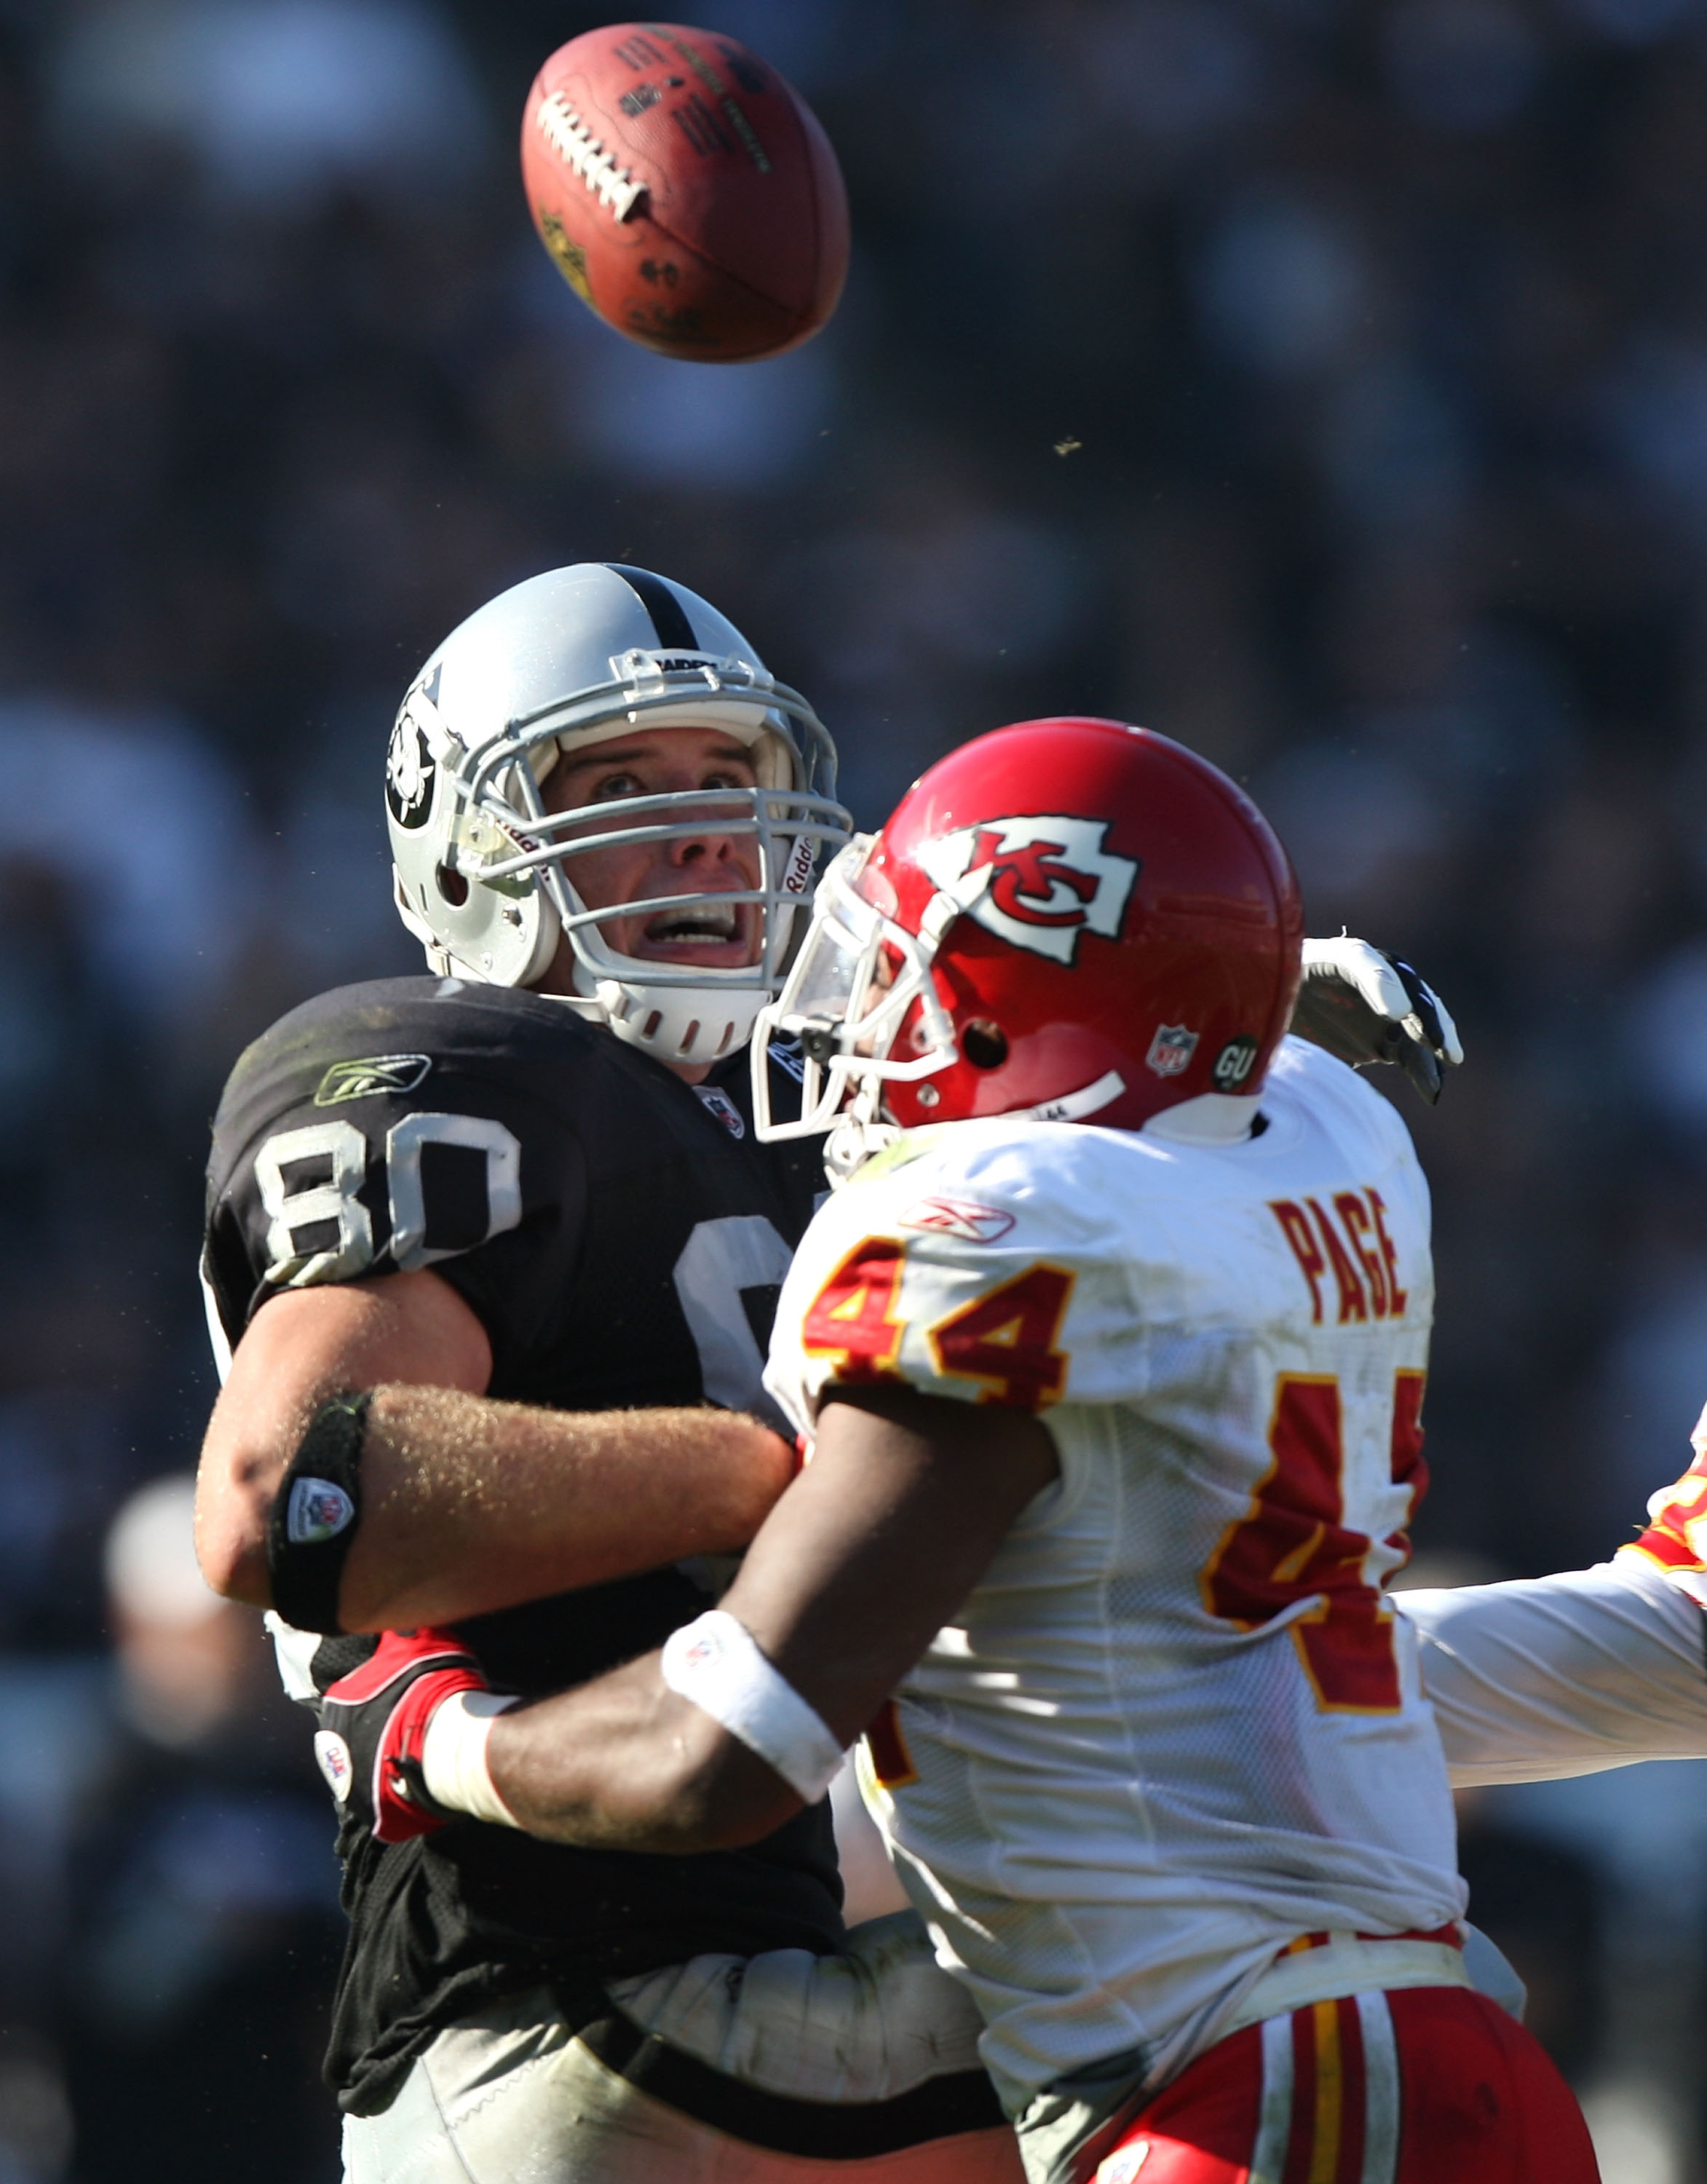 OAKLAND, CA - NOVEMBER 30: Jarrad Page #44 of the Kansas City Chiefs breaks up a pass to Zach Miller #80 of the Oakland Raiders during an NFL game on November 30, 2008 at the Oakland-Alameda County Coliseum in Oakland, California. (Photo by Jed Jacobsohn/